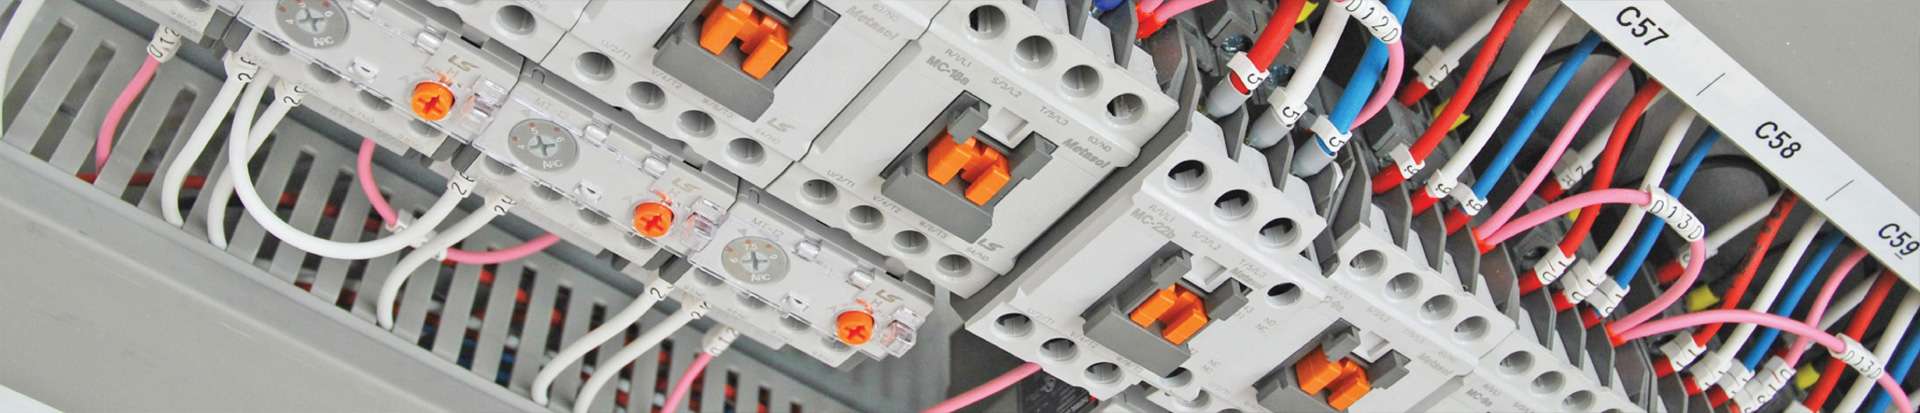 Excel Switchgear Electrical Switchboard Wellington Nz Wiring View Our Latest Projects Niwa Ird Elevate Apartments And More